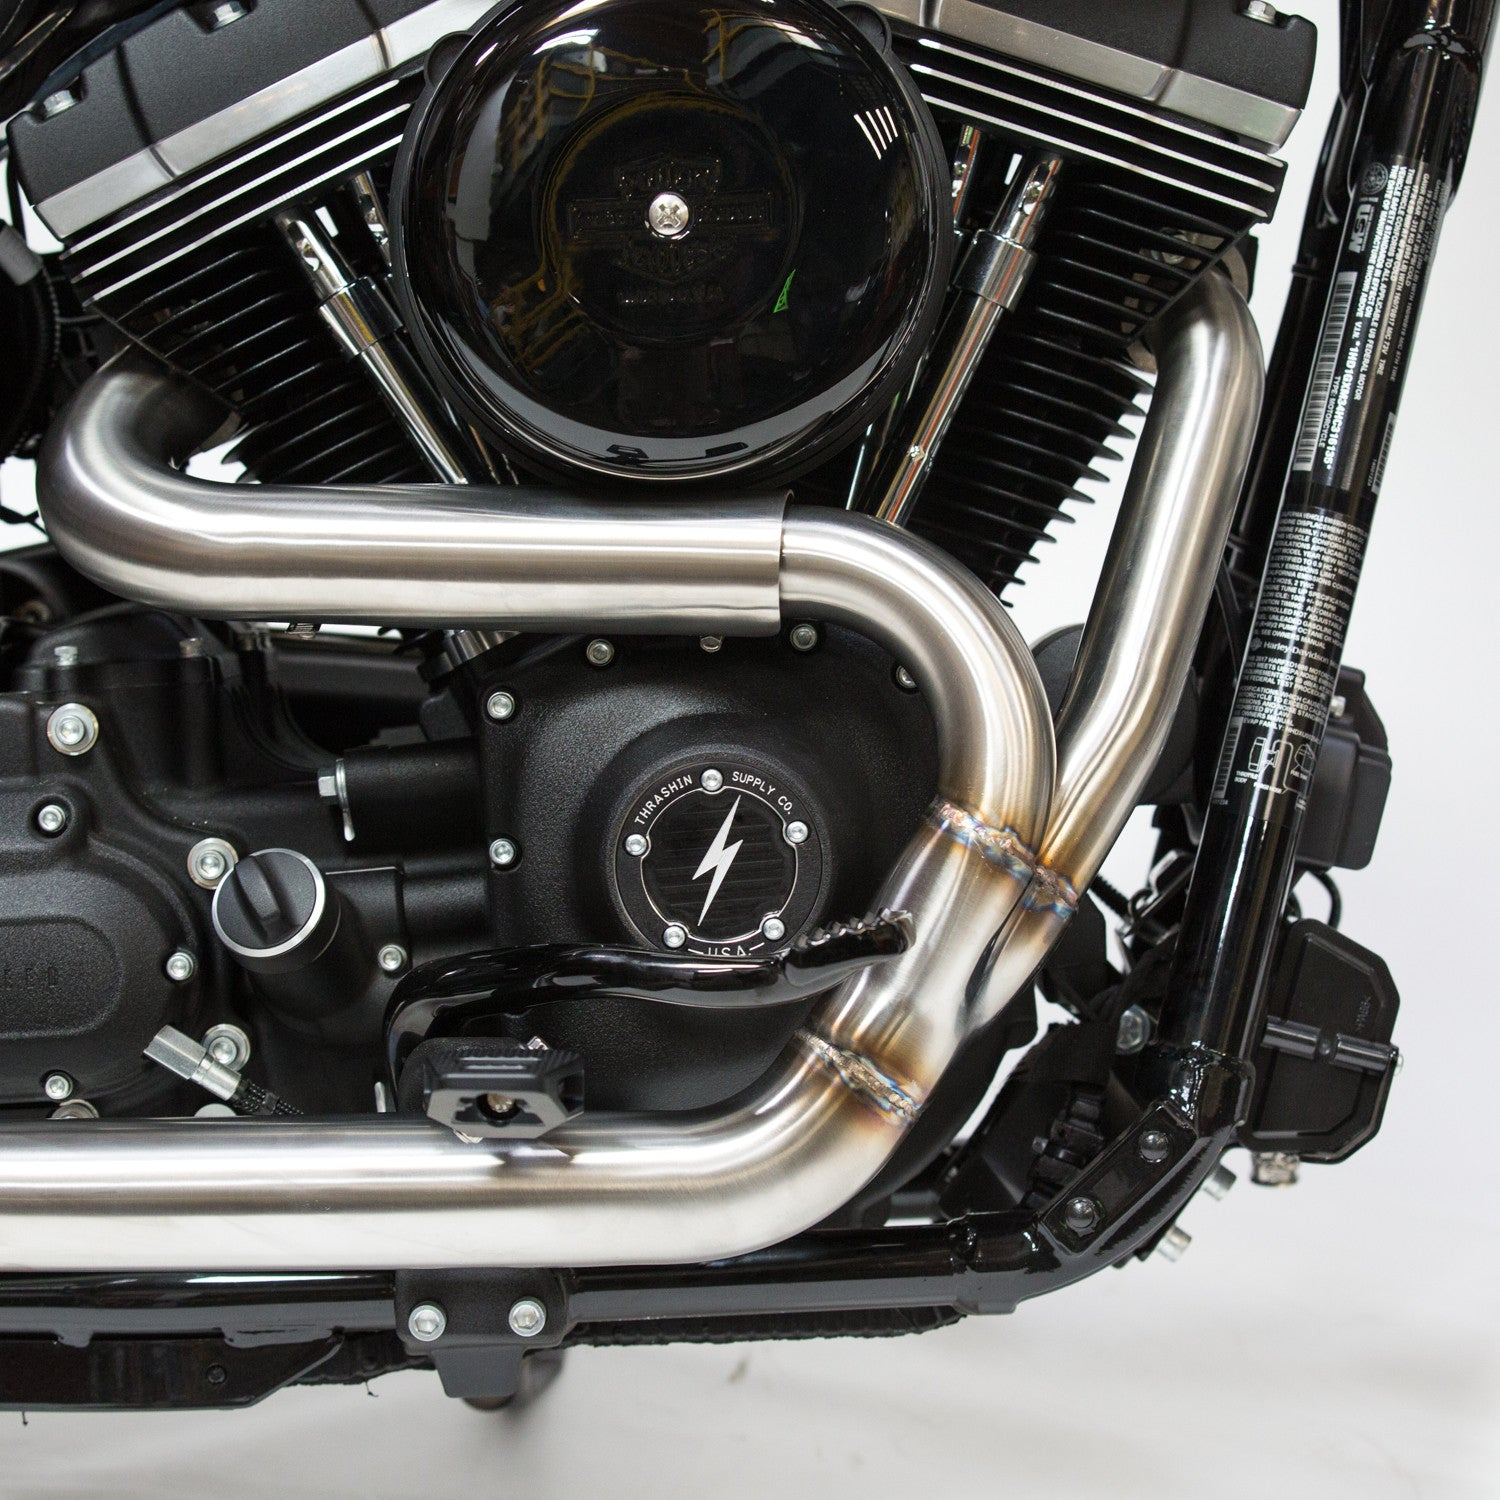 OG Stainless Exhaust w/ Removable Baffle & End Cap FXR